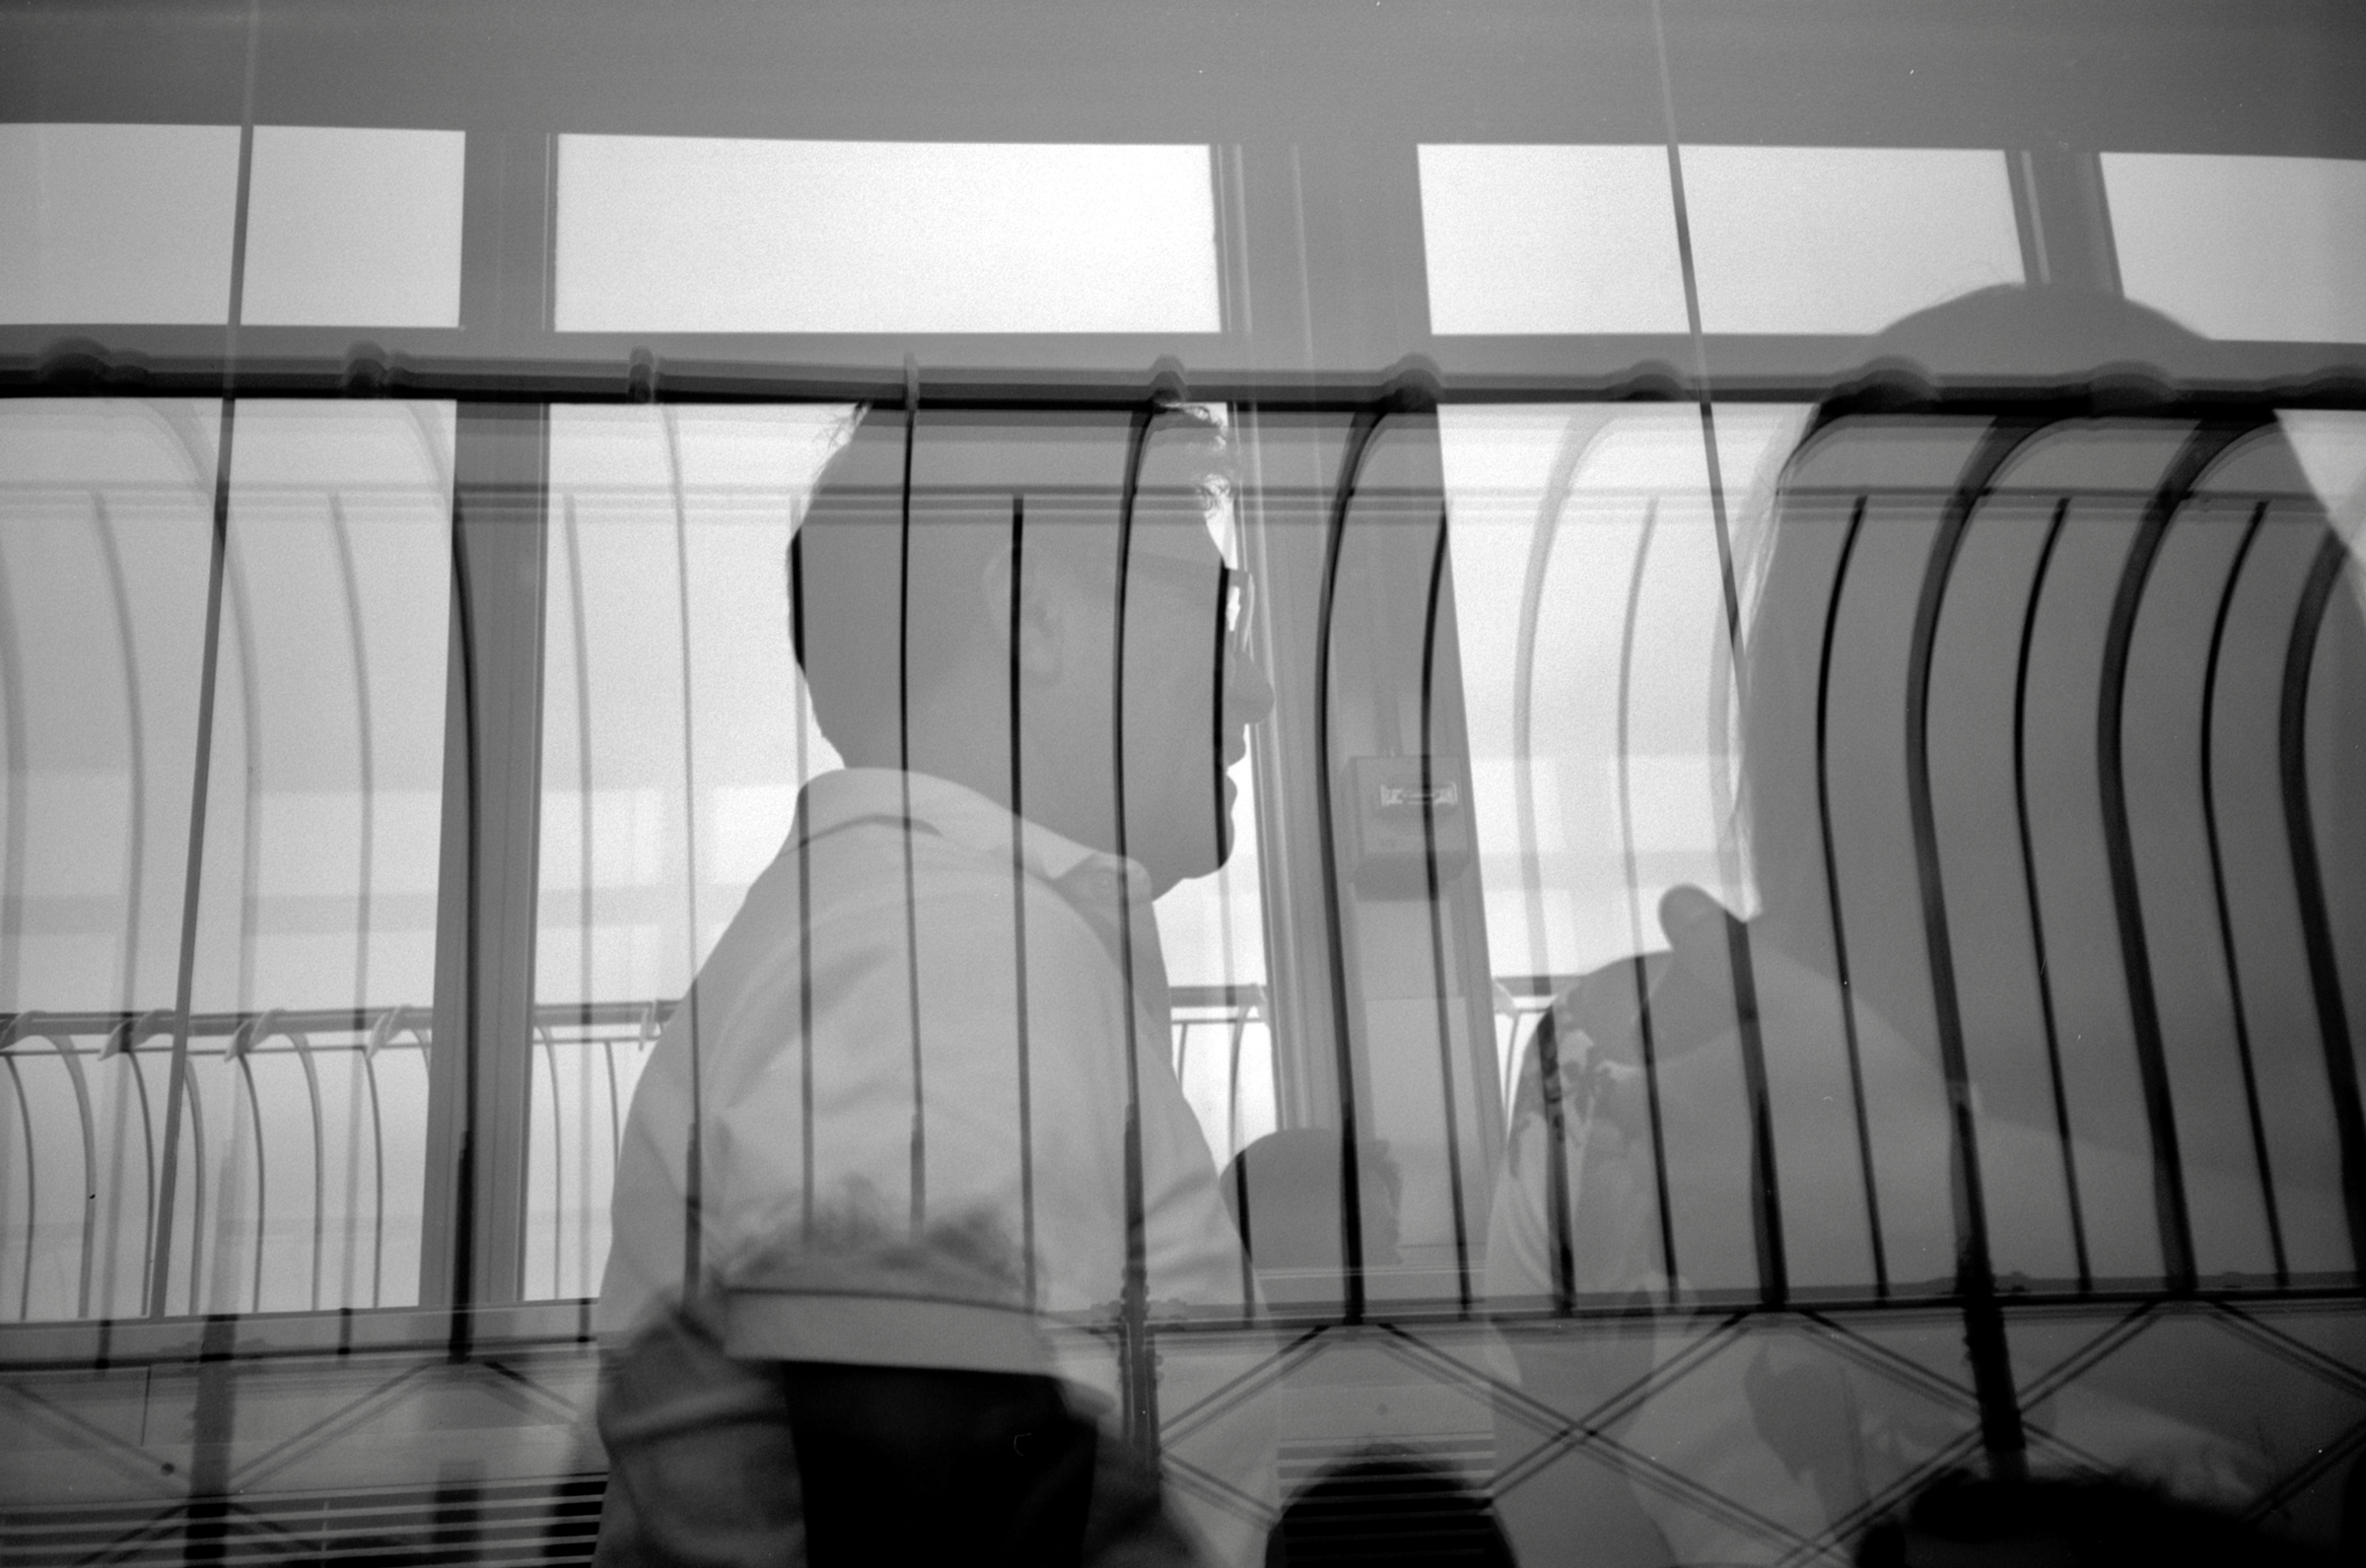 Photo by Edward Conde   Shot with a Nikon L35AF at 40 ISO  Processed in HC110 @ 5mins 68F Dilution B 1:31